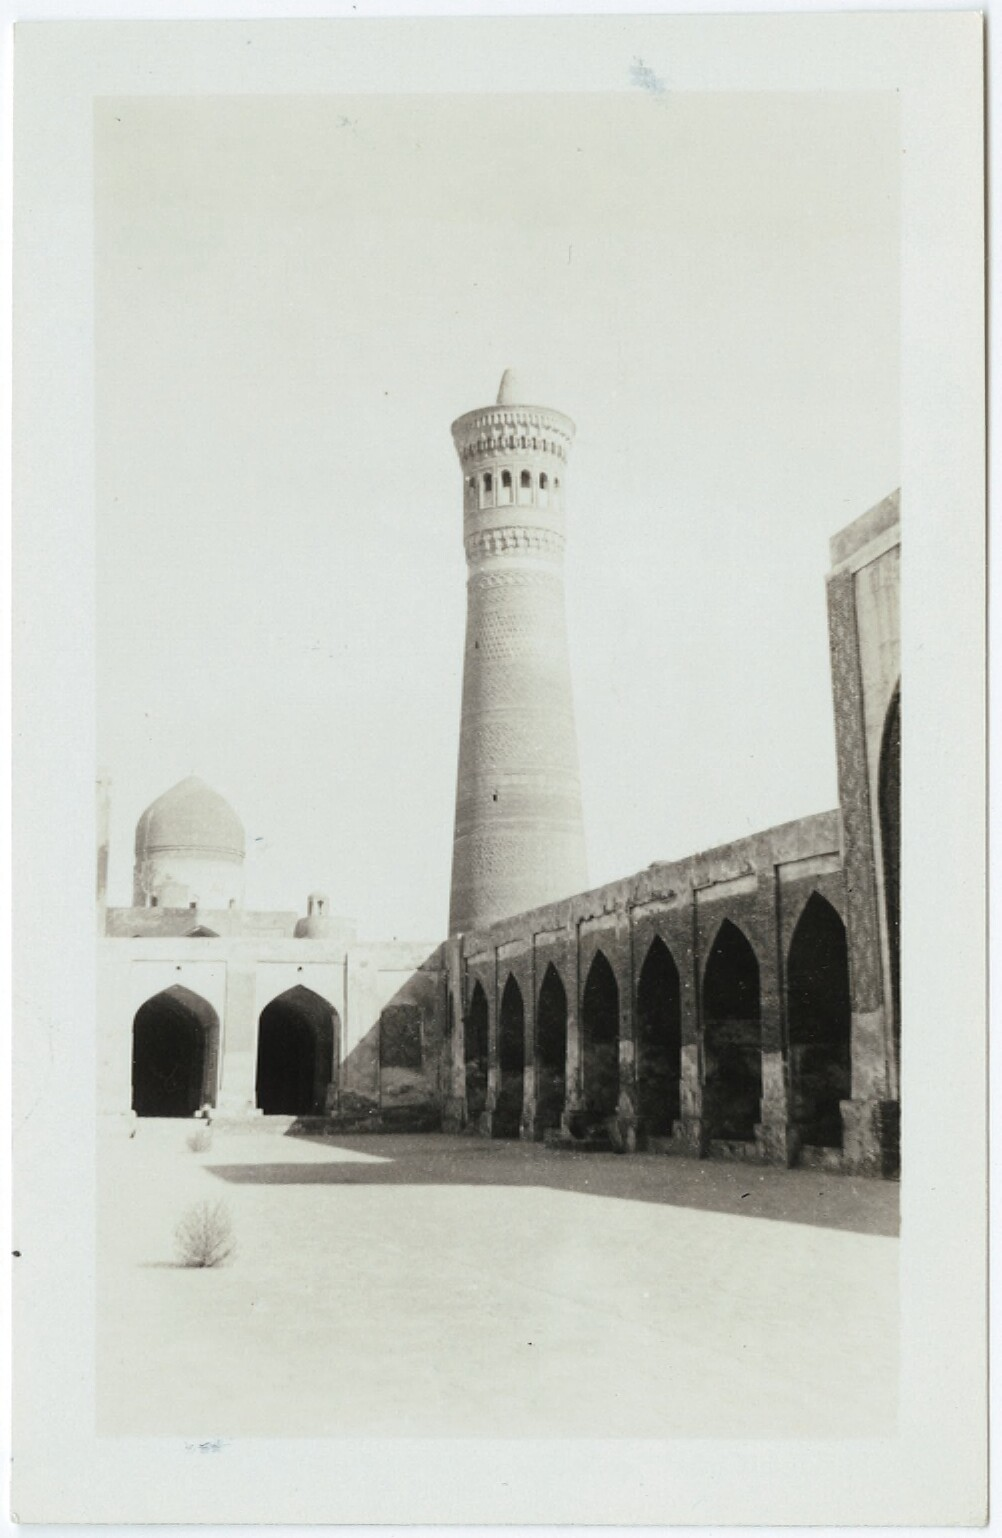 The Tower of Death, Bokhara, (Soviet Central Asia) From- Langston Hughes papers